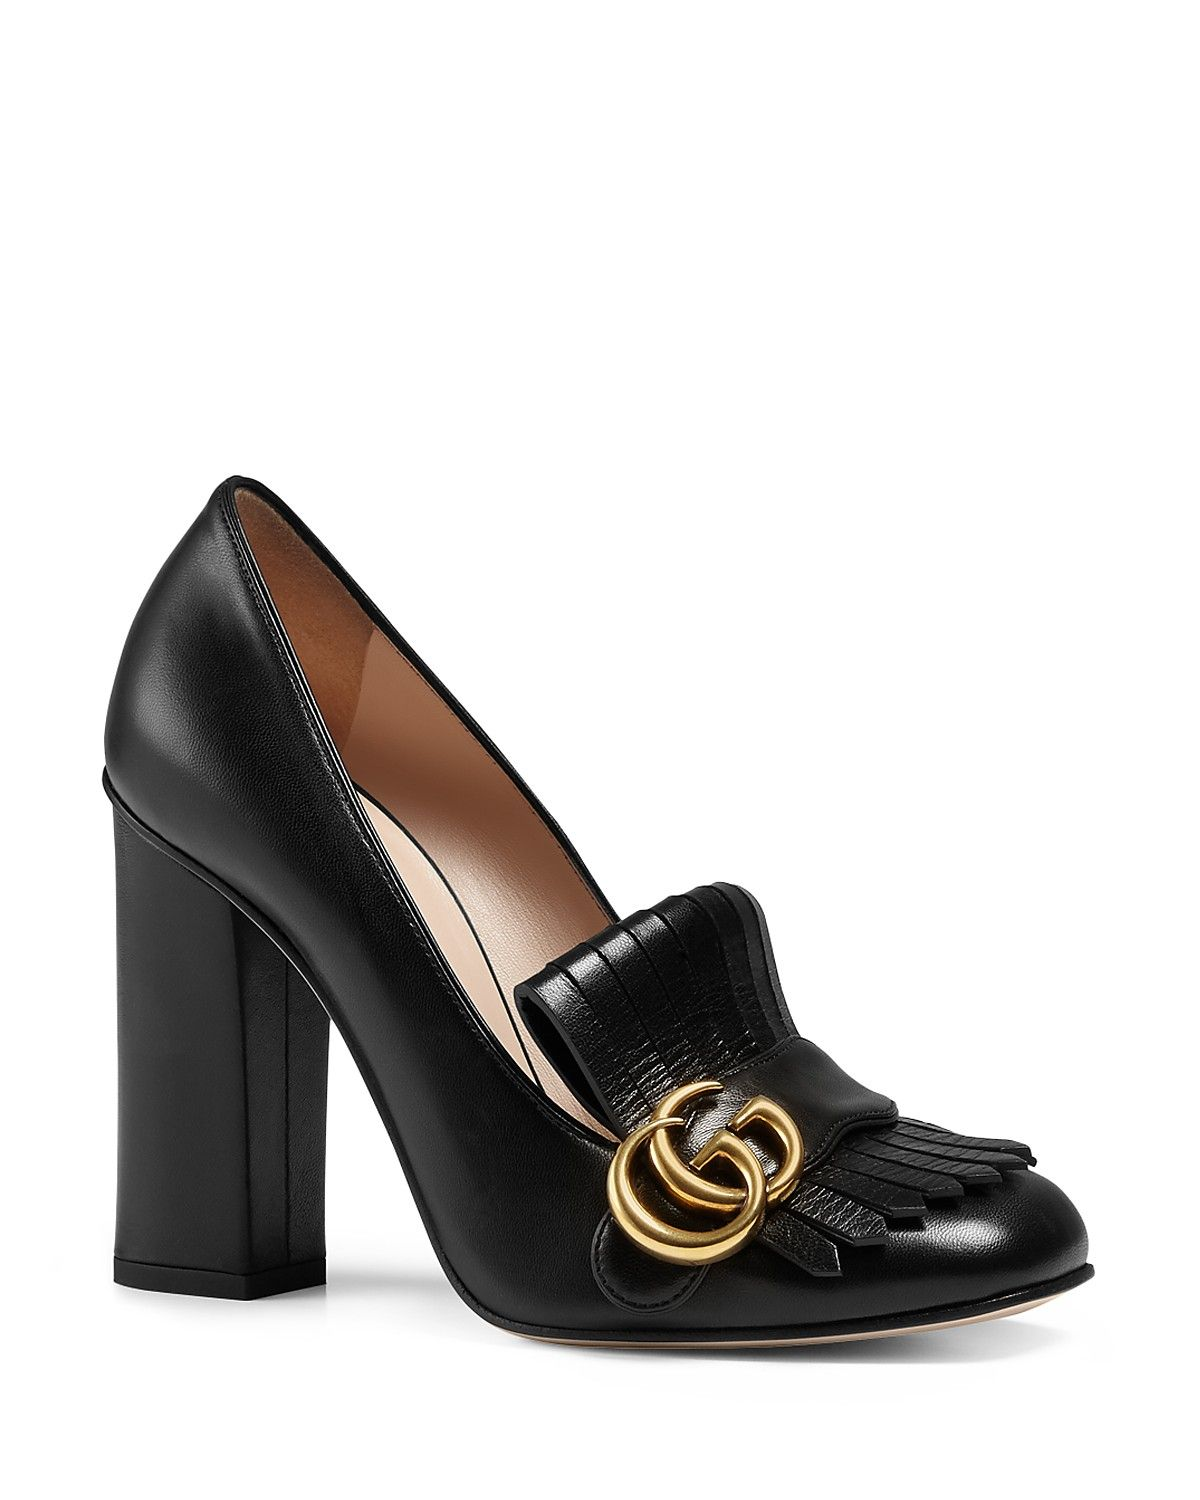 137592c0982a Gucci Marmont Mid Heel Loafers